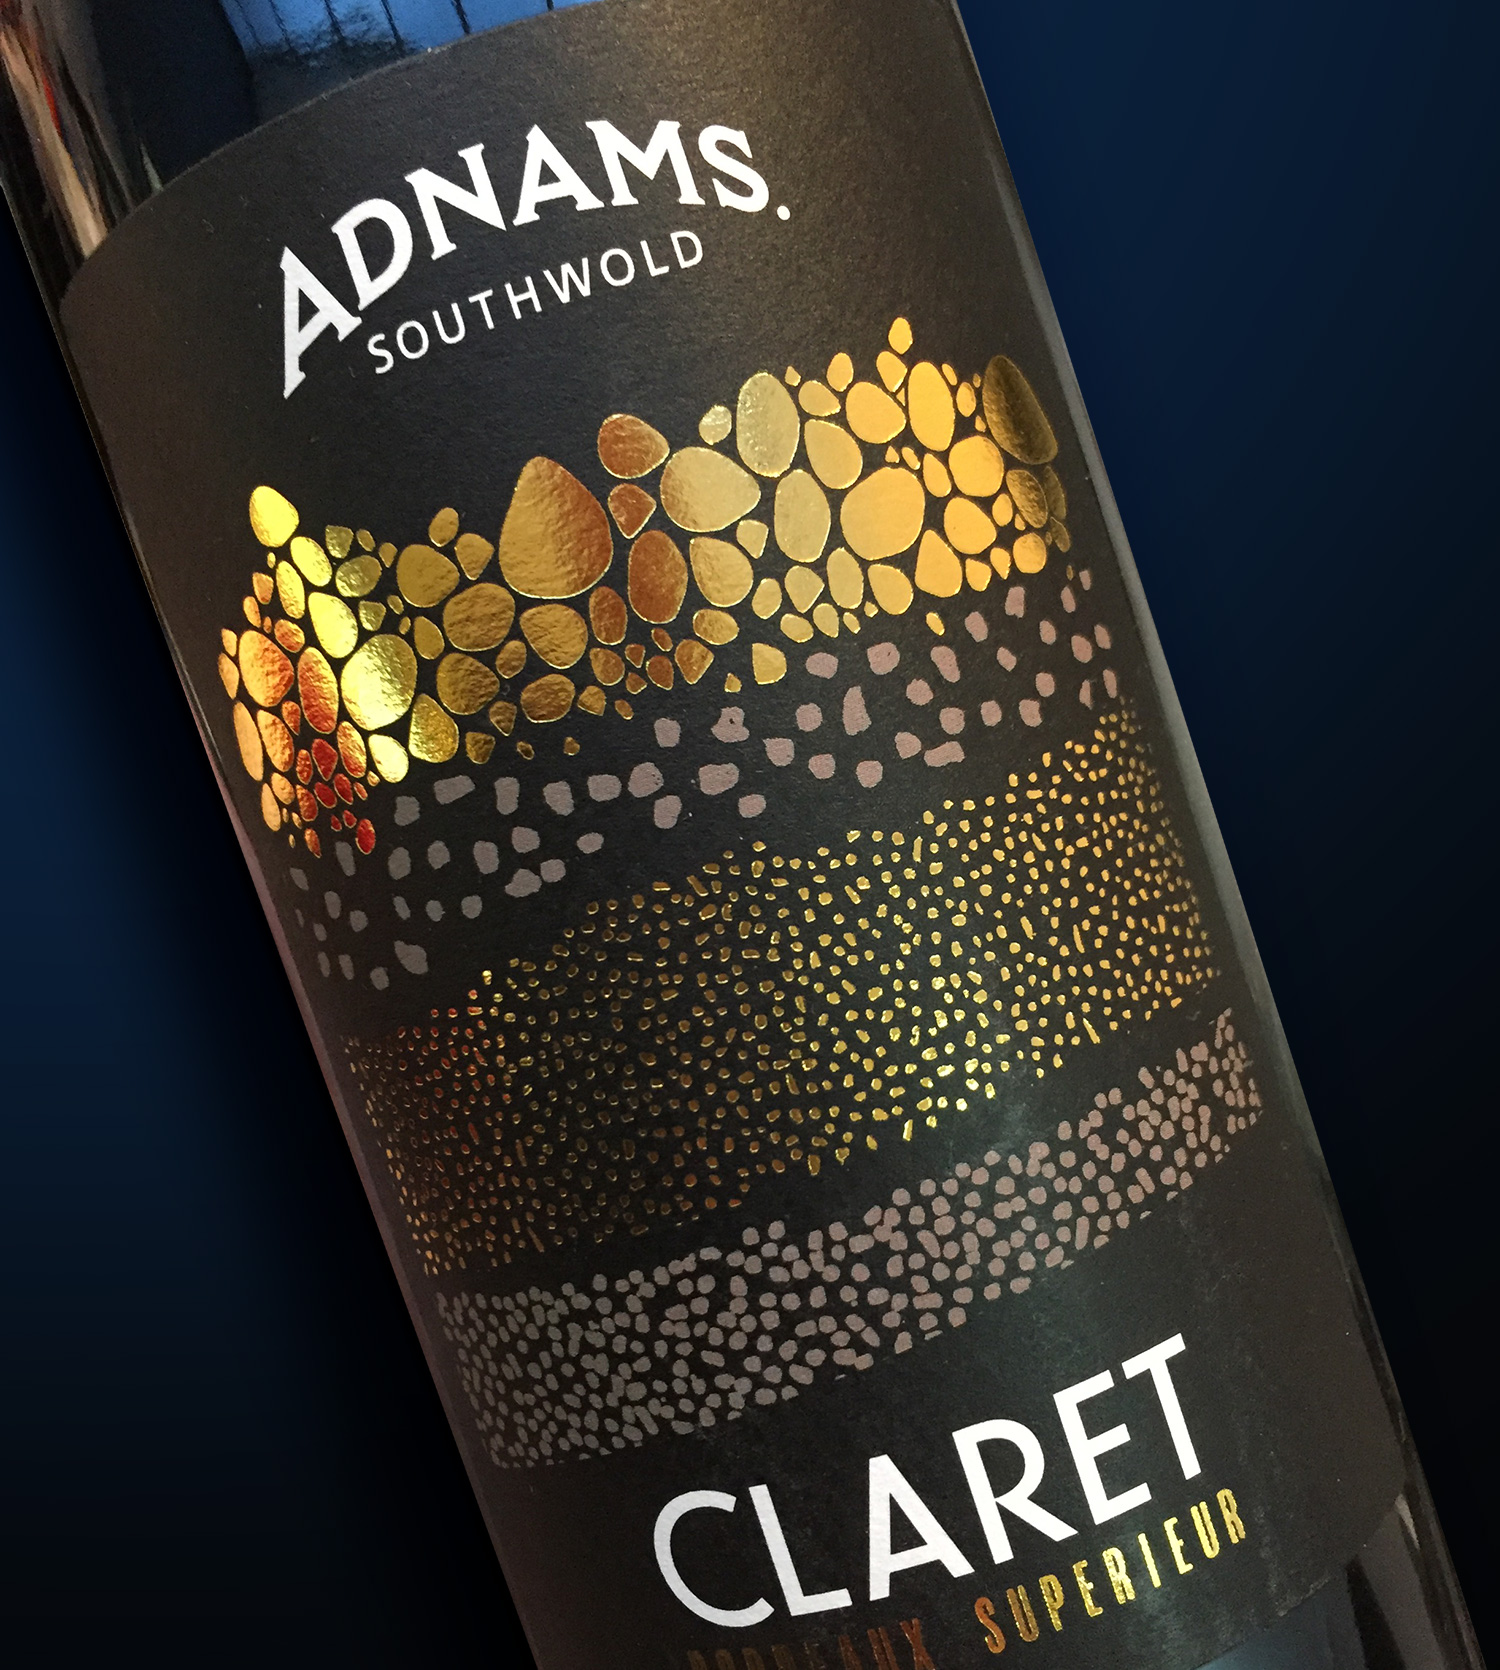 Adnams wine label claret